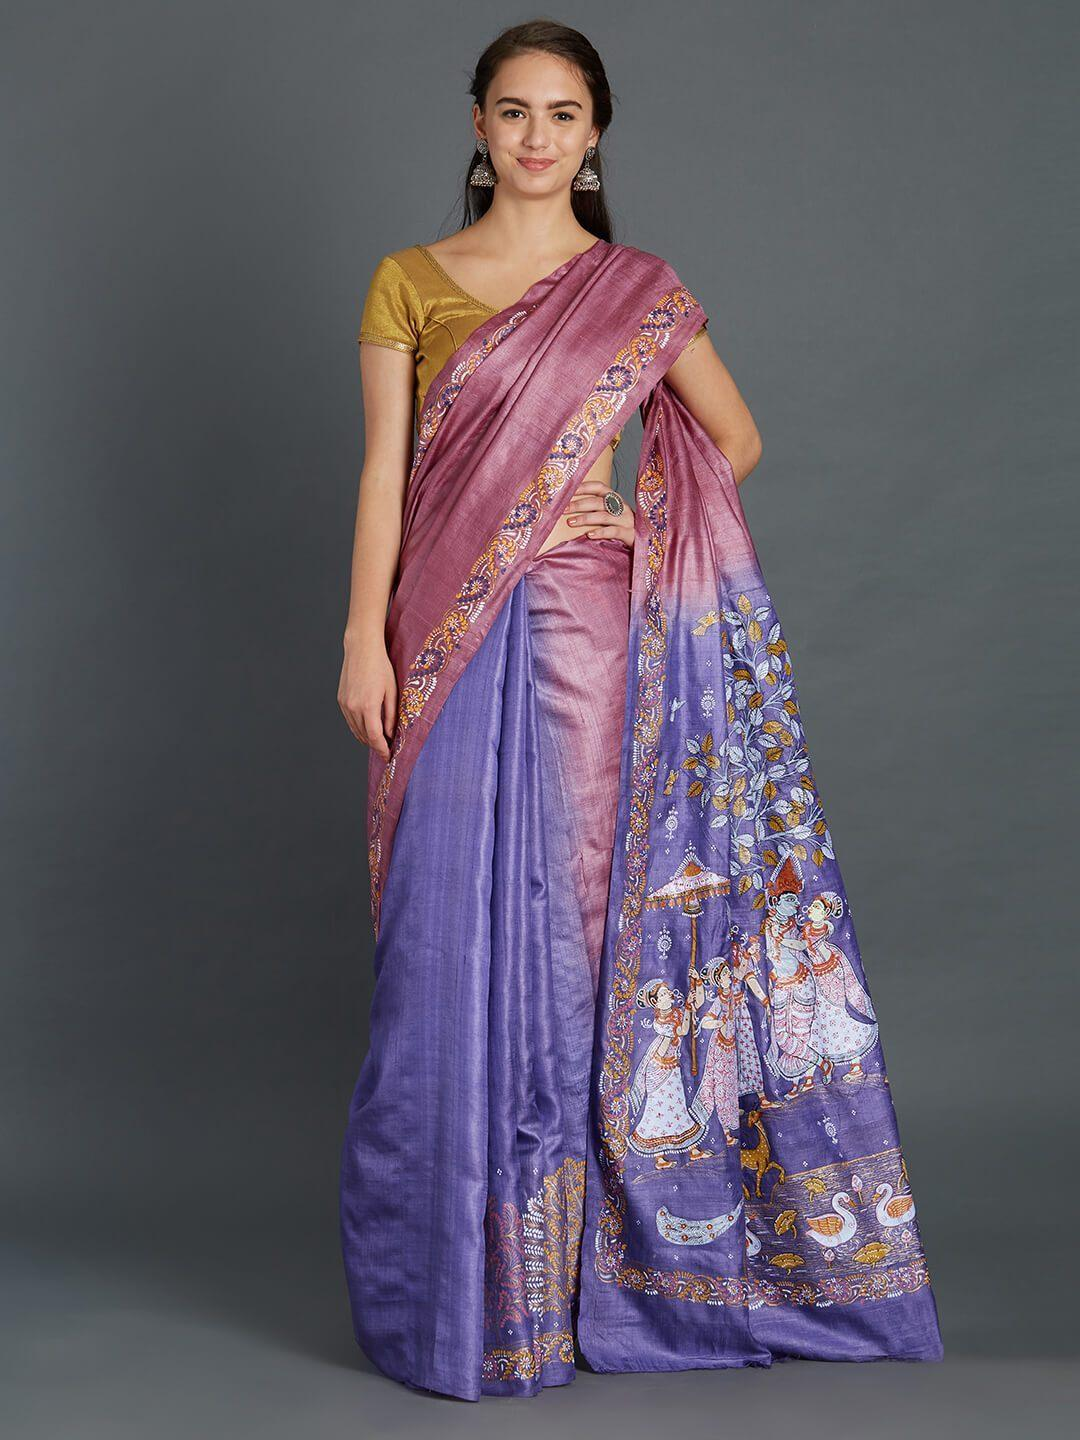 Tussar Silk Saree with handpainted Pattachitra motifs